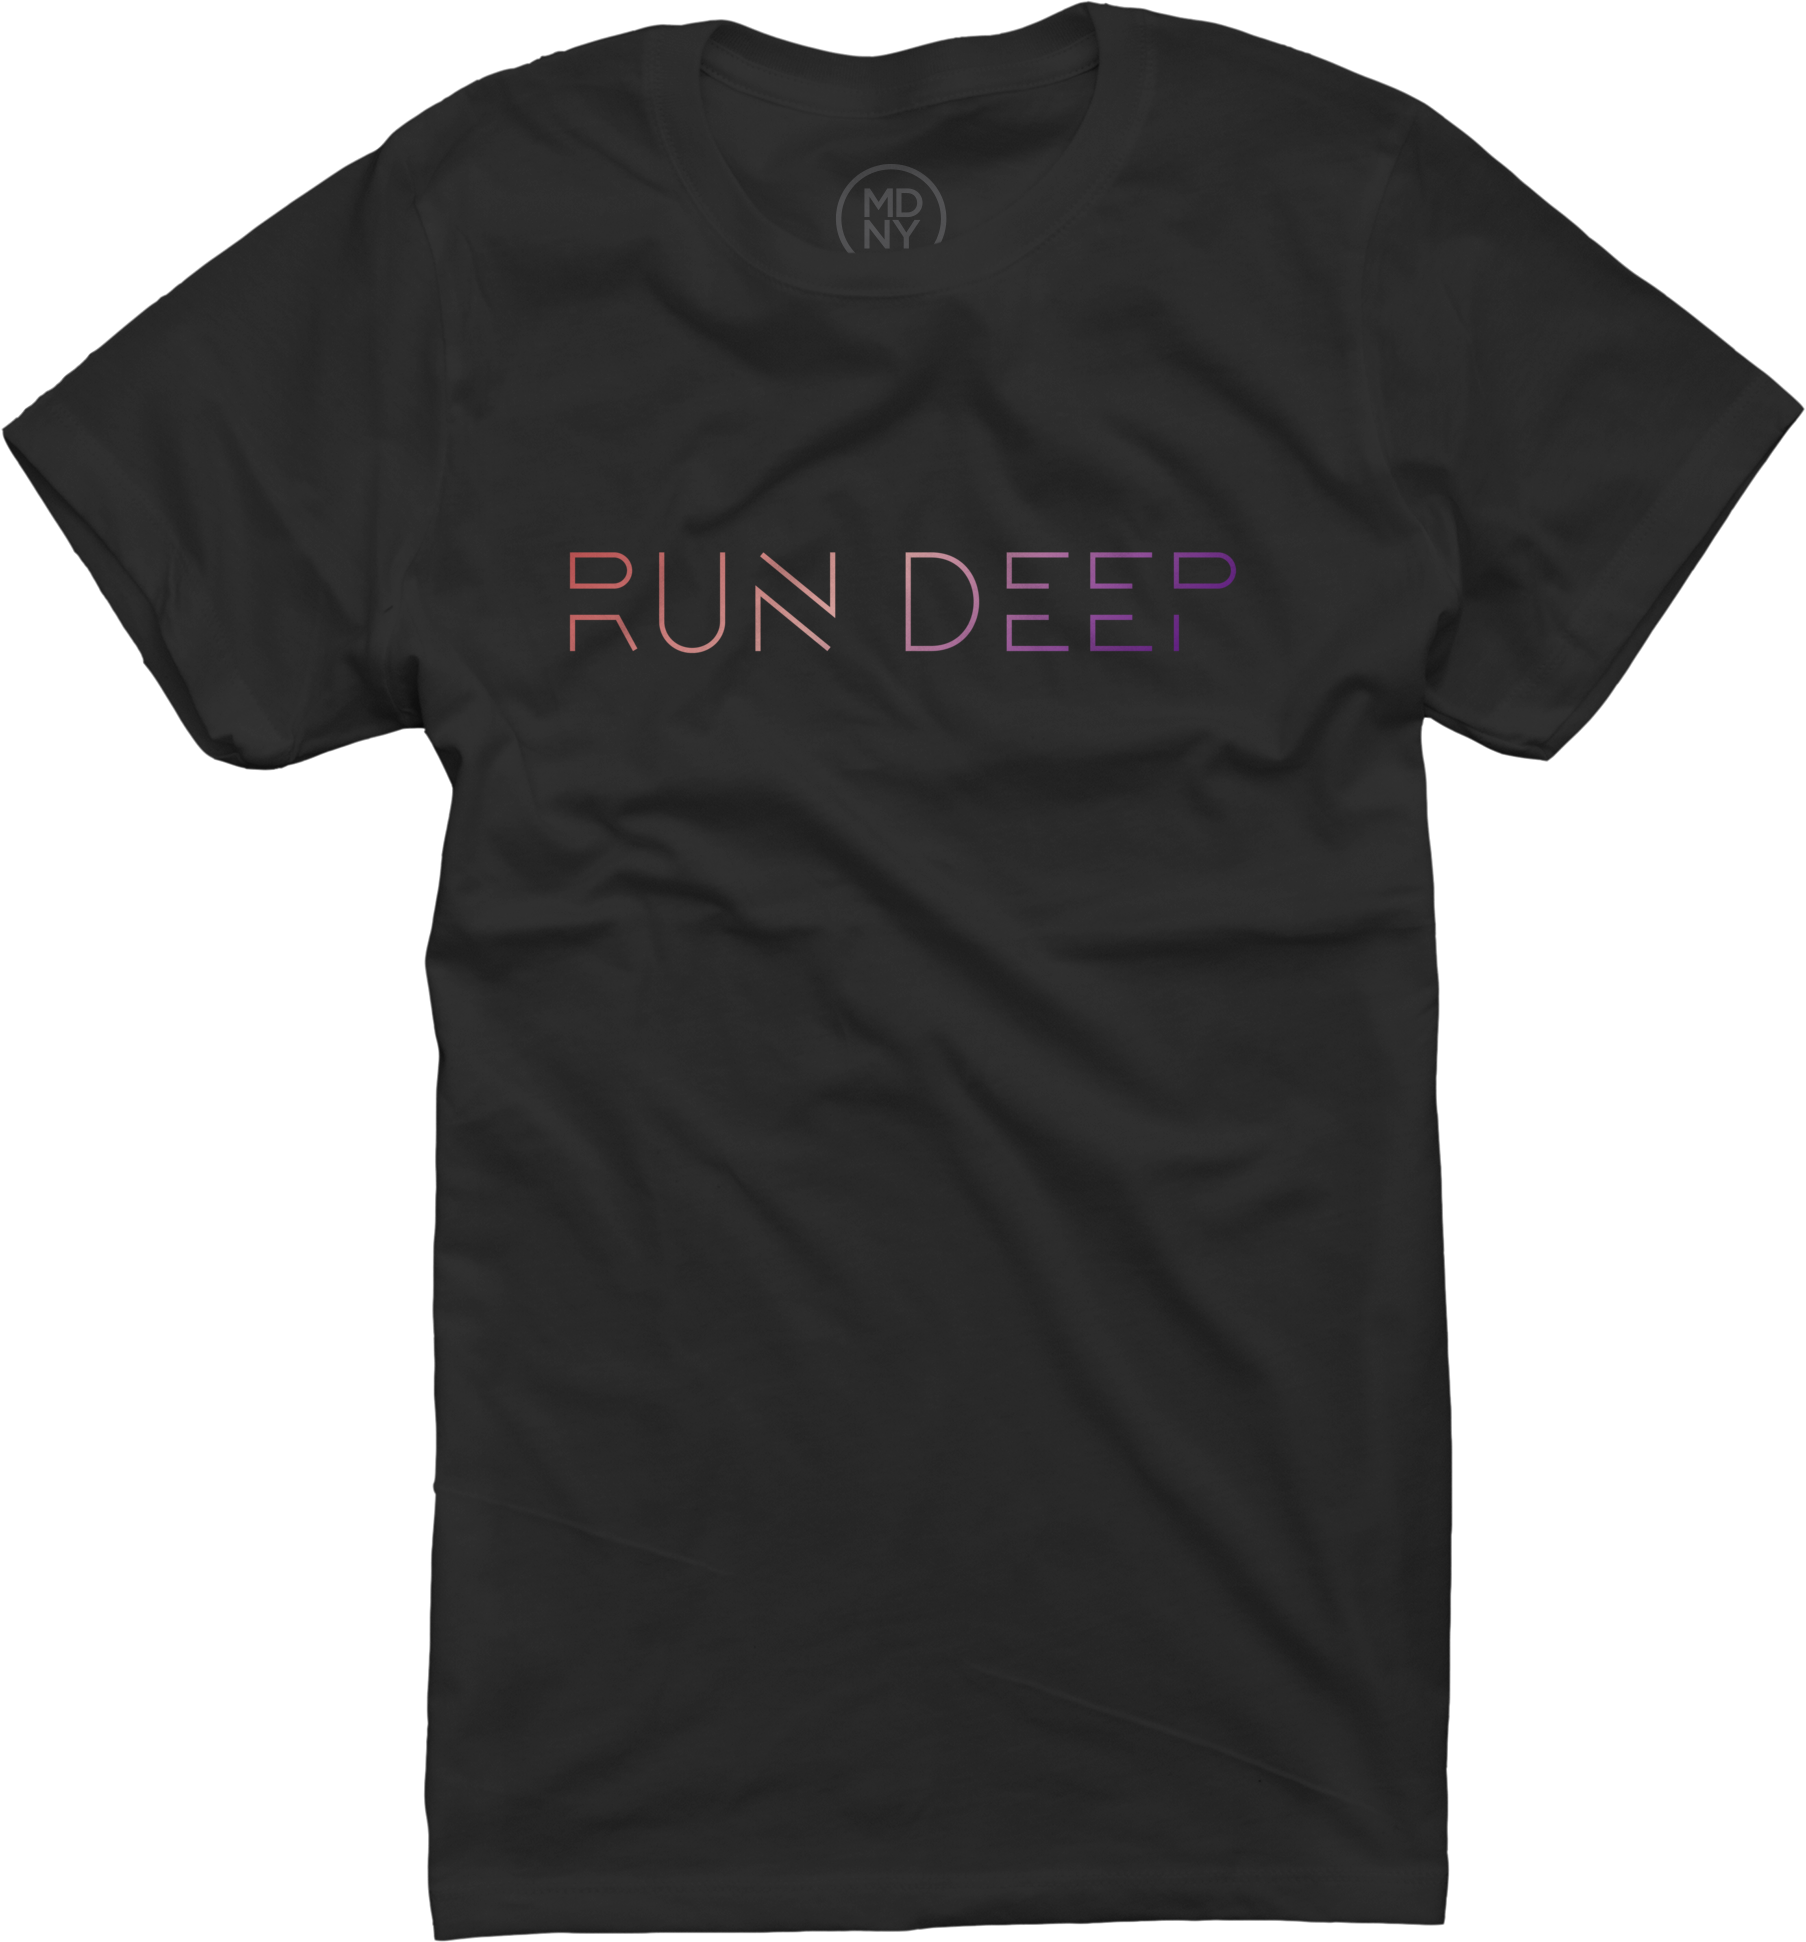 RUN DEEP Women's T-shirt